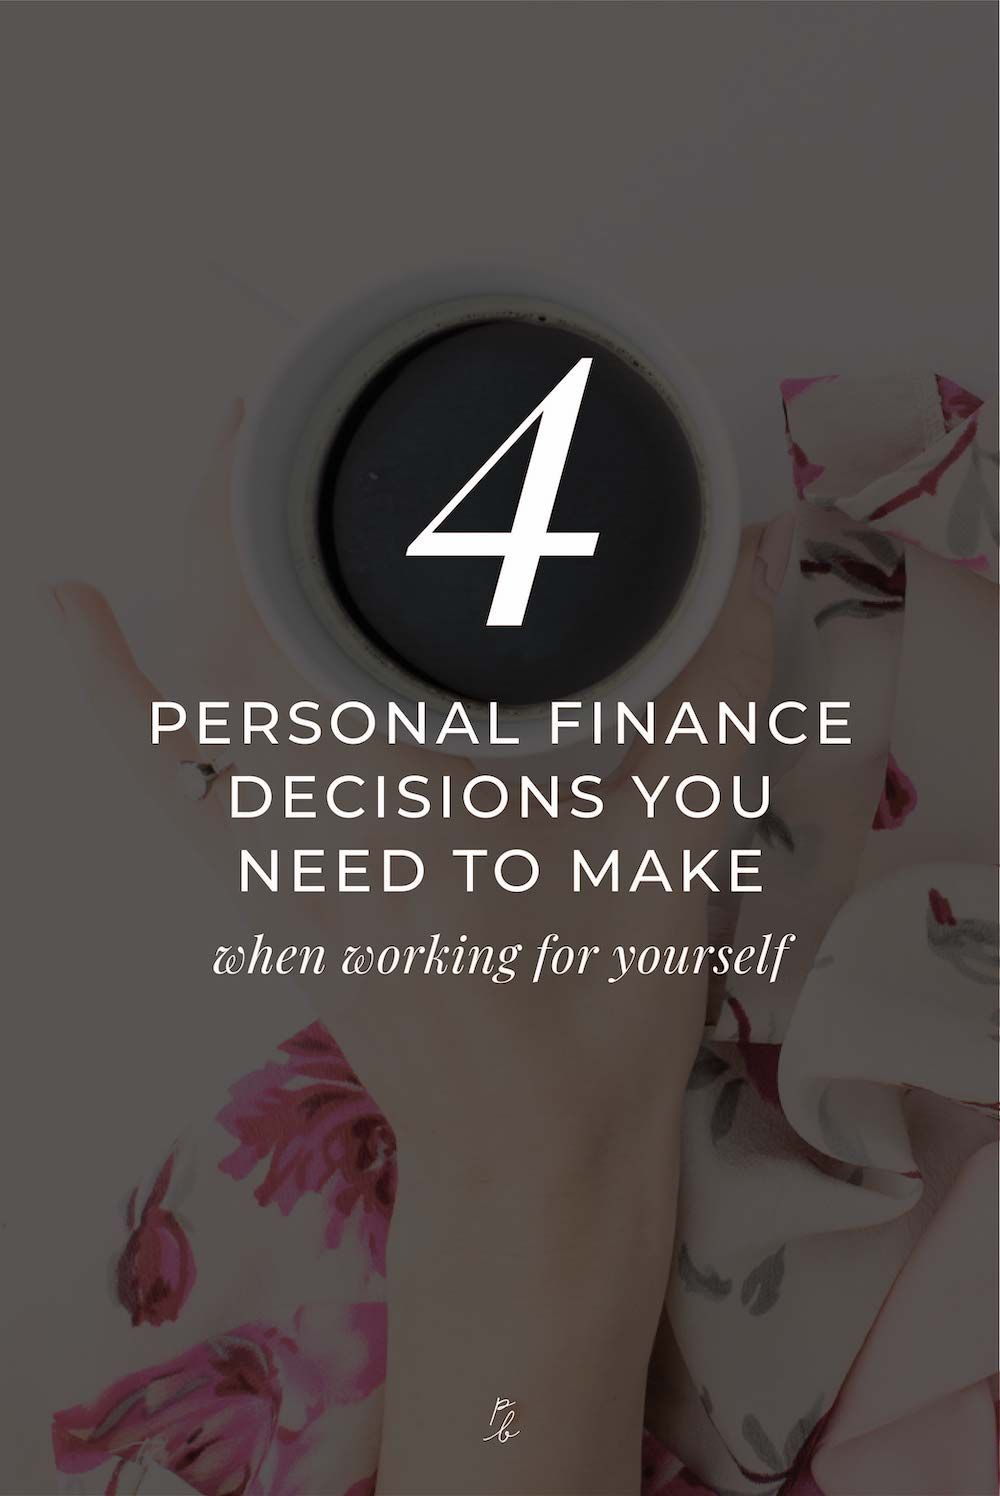 4 personal finance decisions you need to make when working for yourself-2.jpg